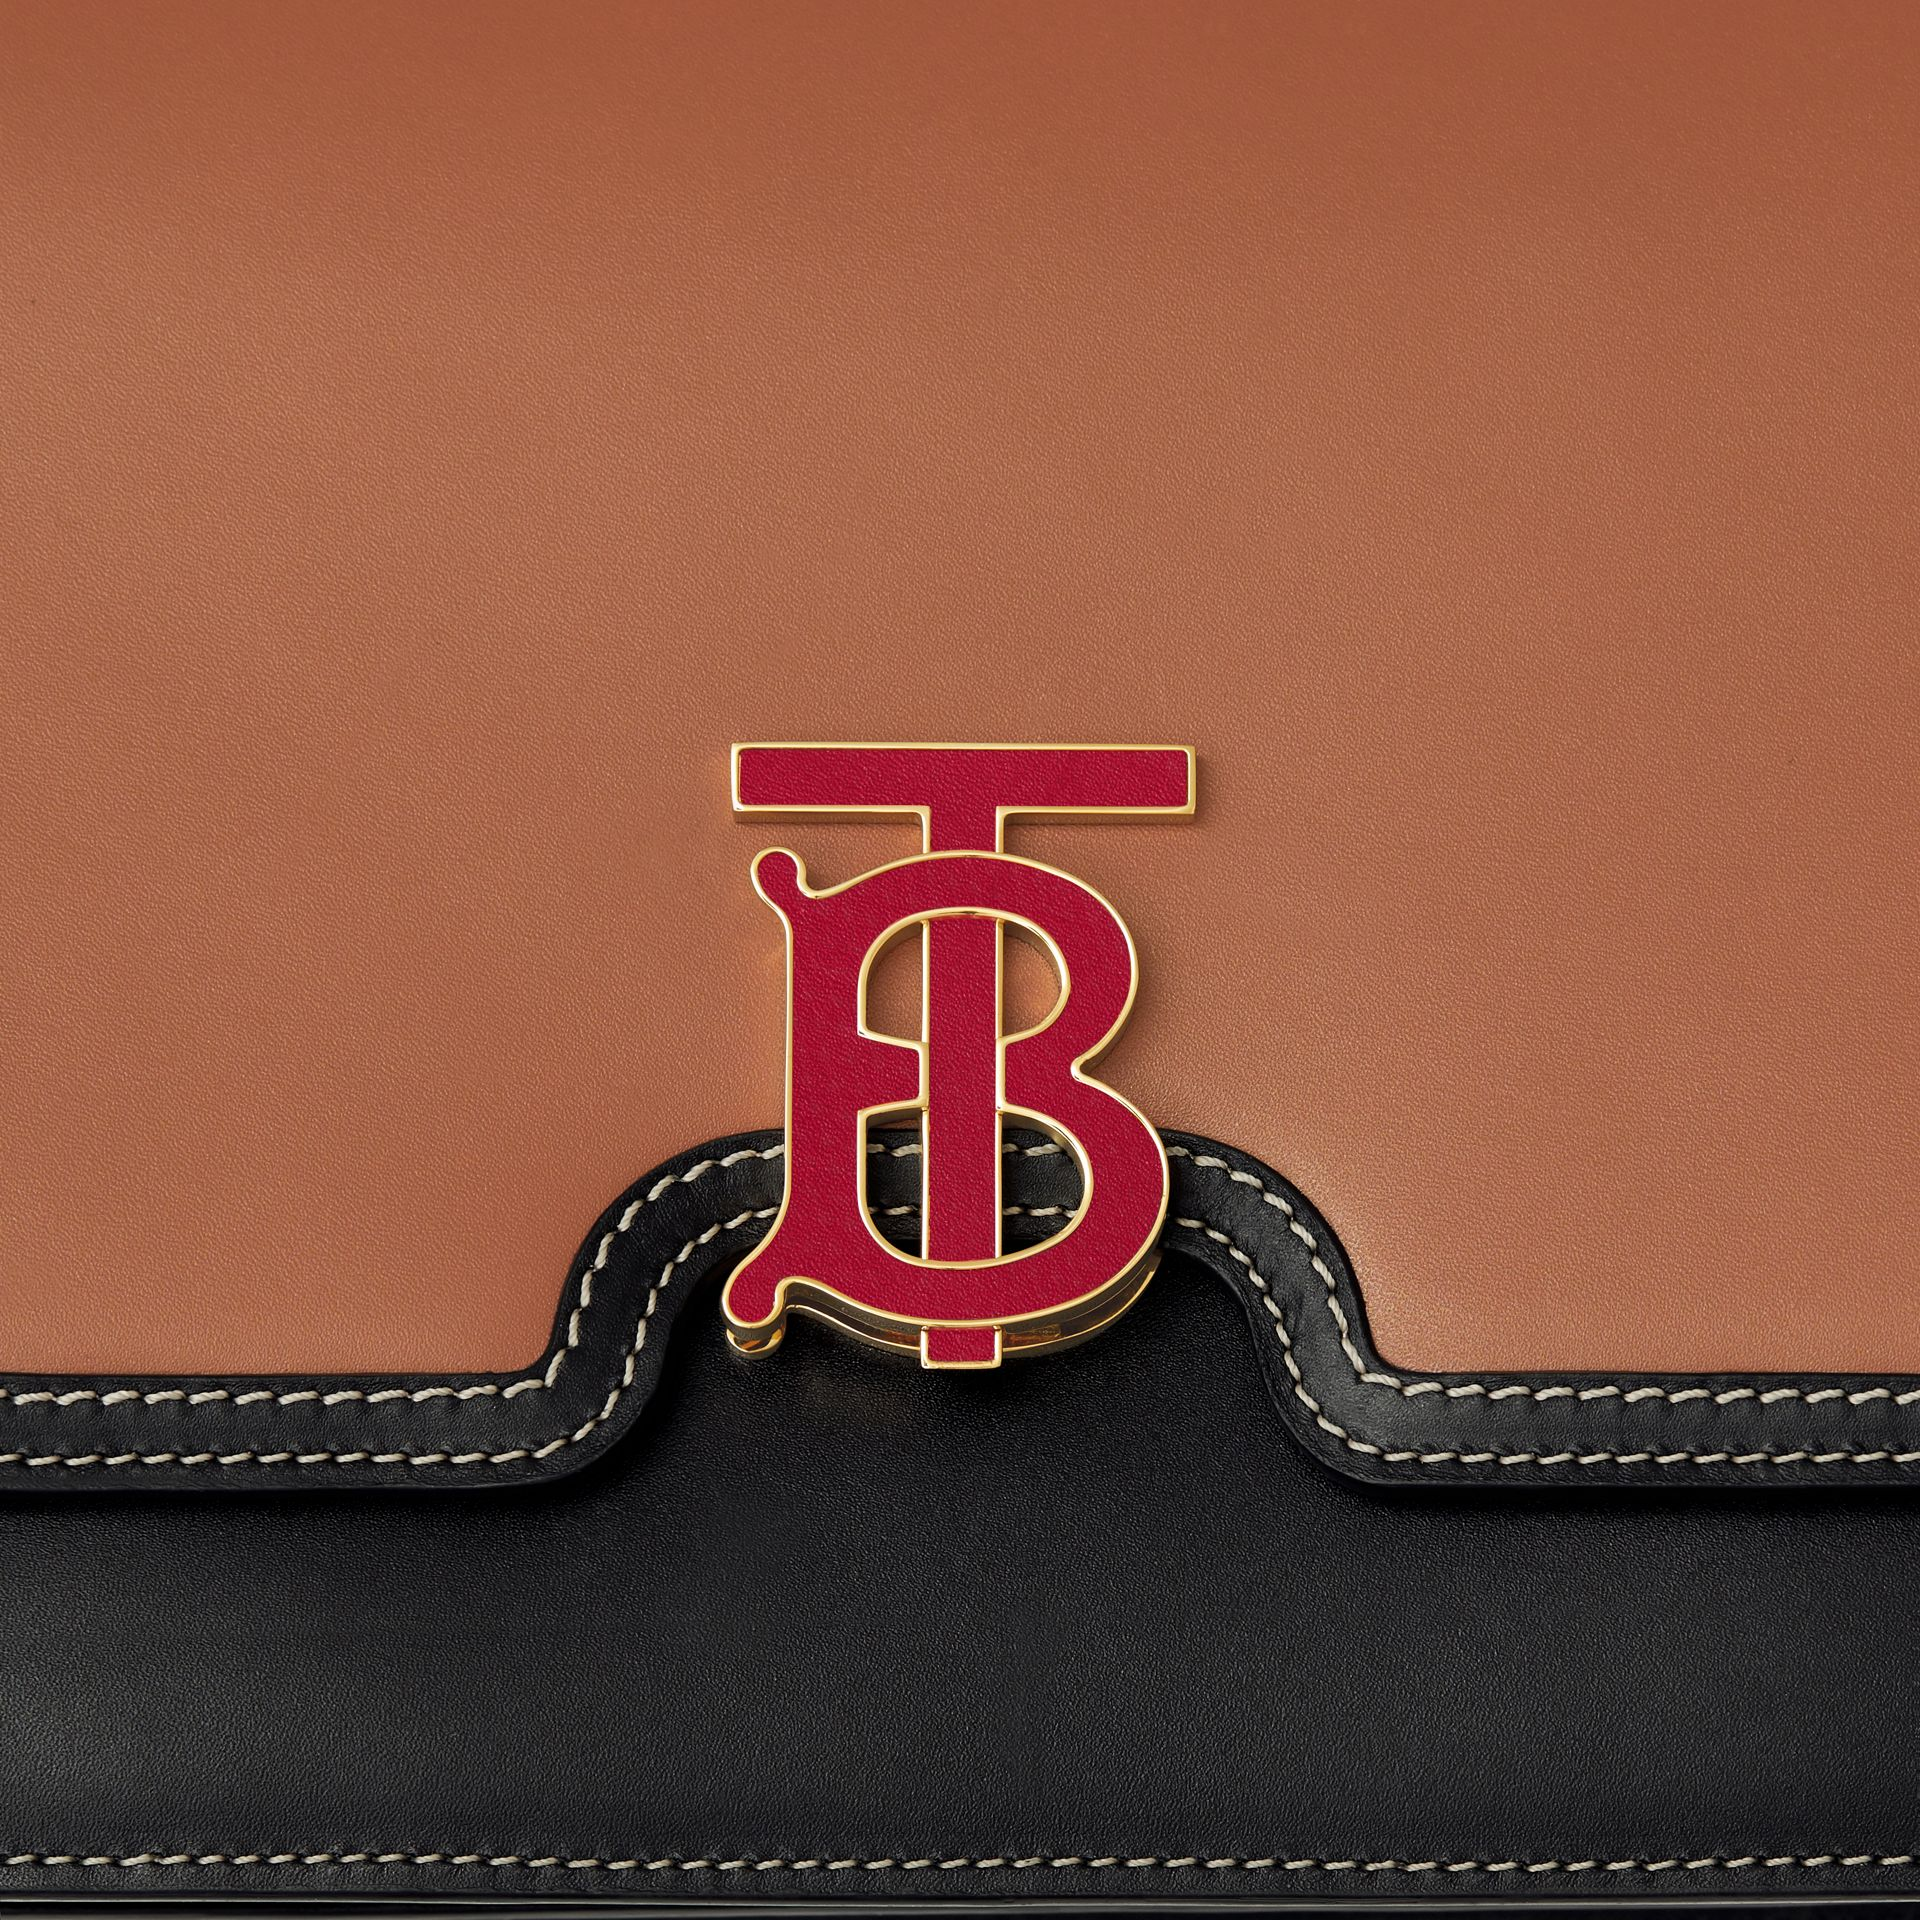 Medium Two-tone Leather TB Bag in Malt Brown/black - Women | Burberry United Kingdom - gallery image 1